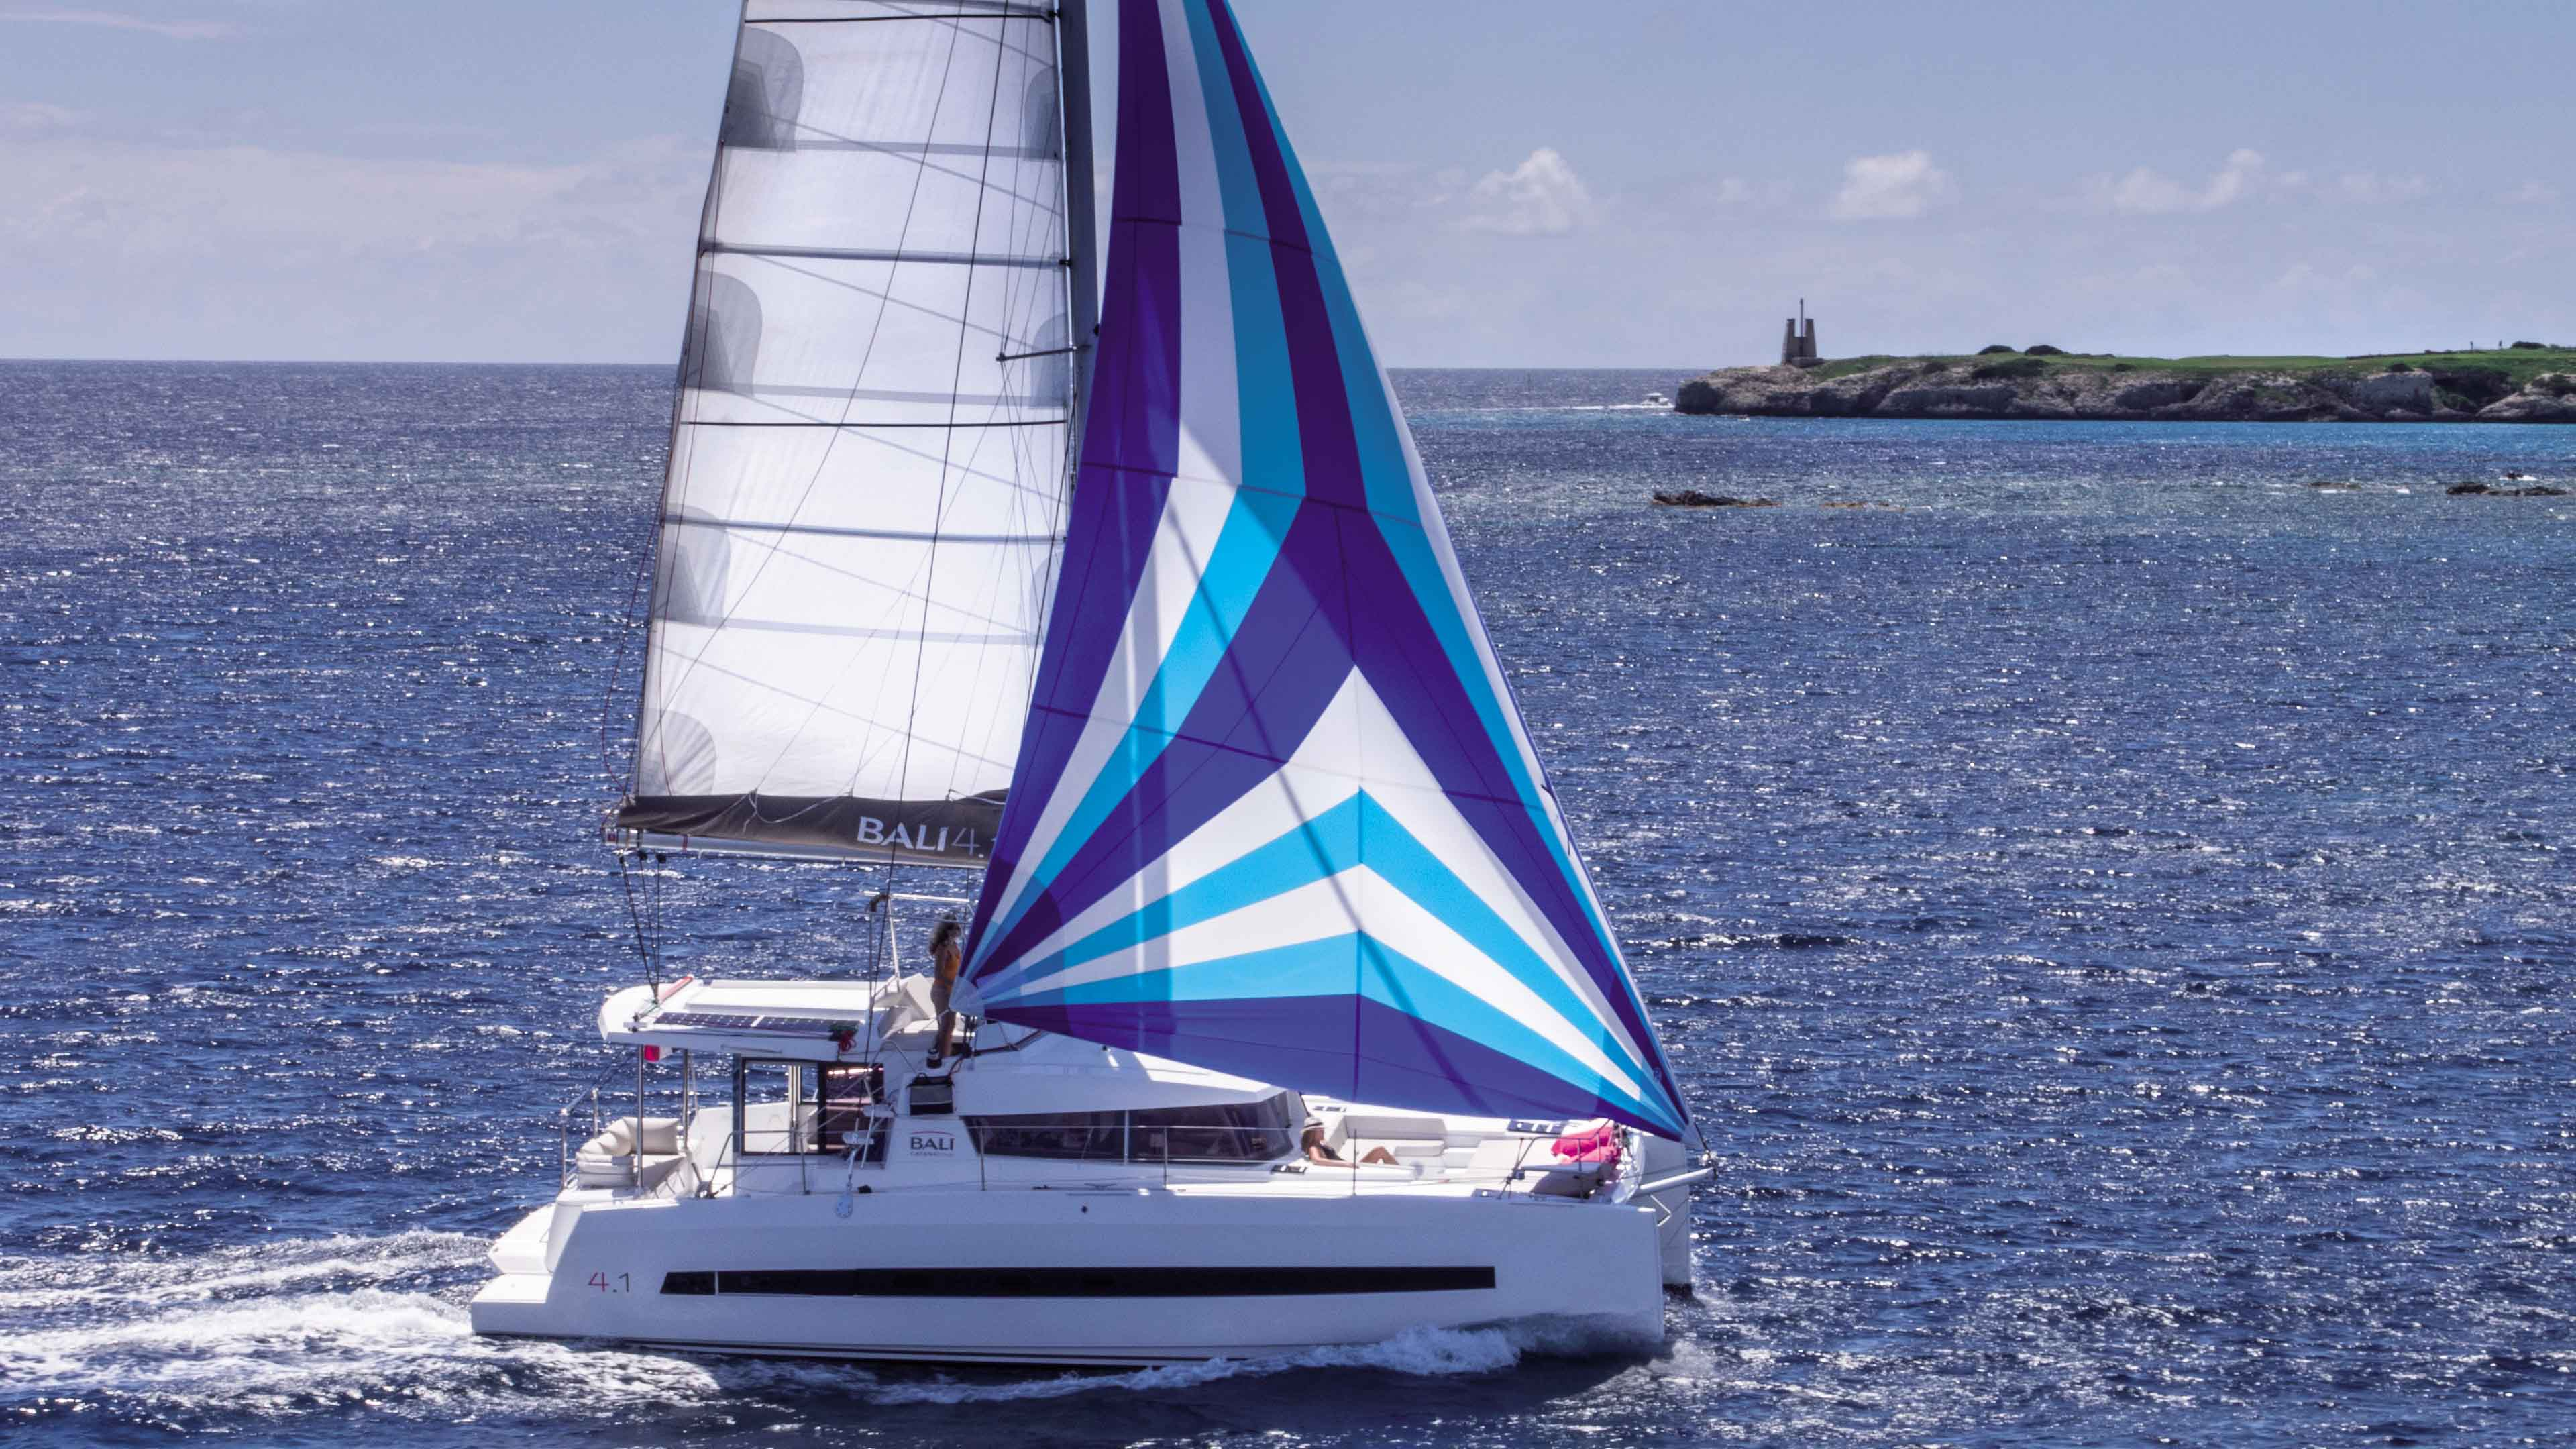 Bali 4.1 Prestige - Catamaran for Charter in Greece